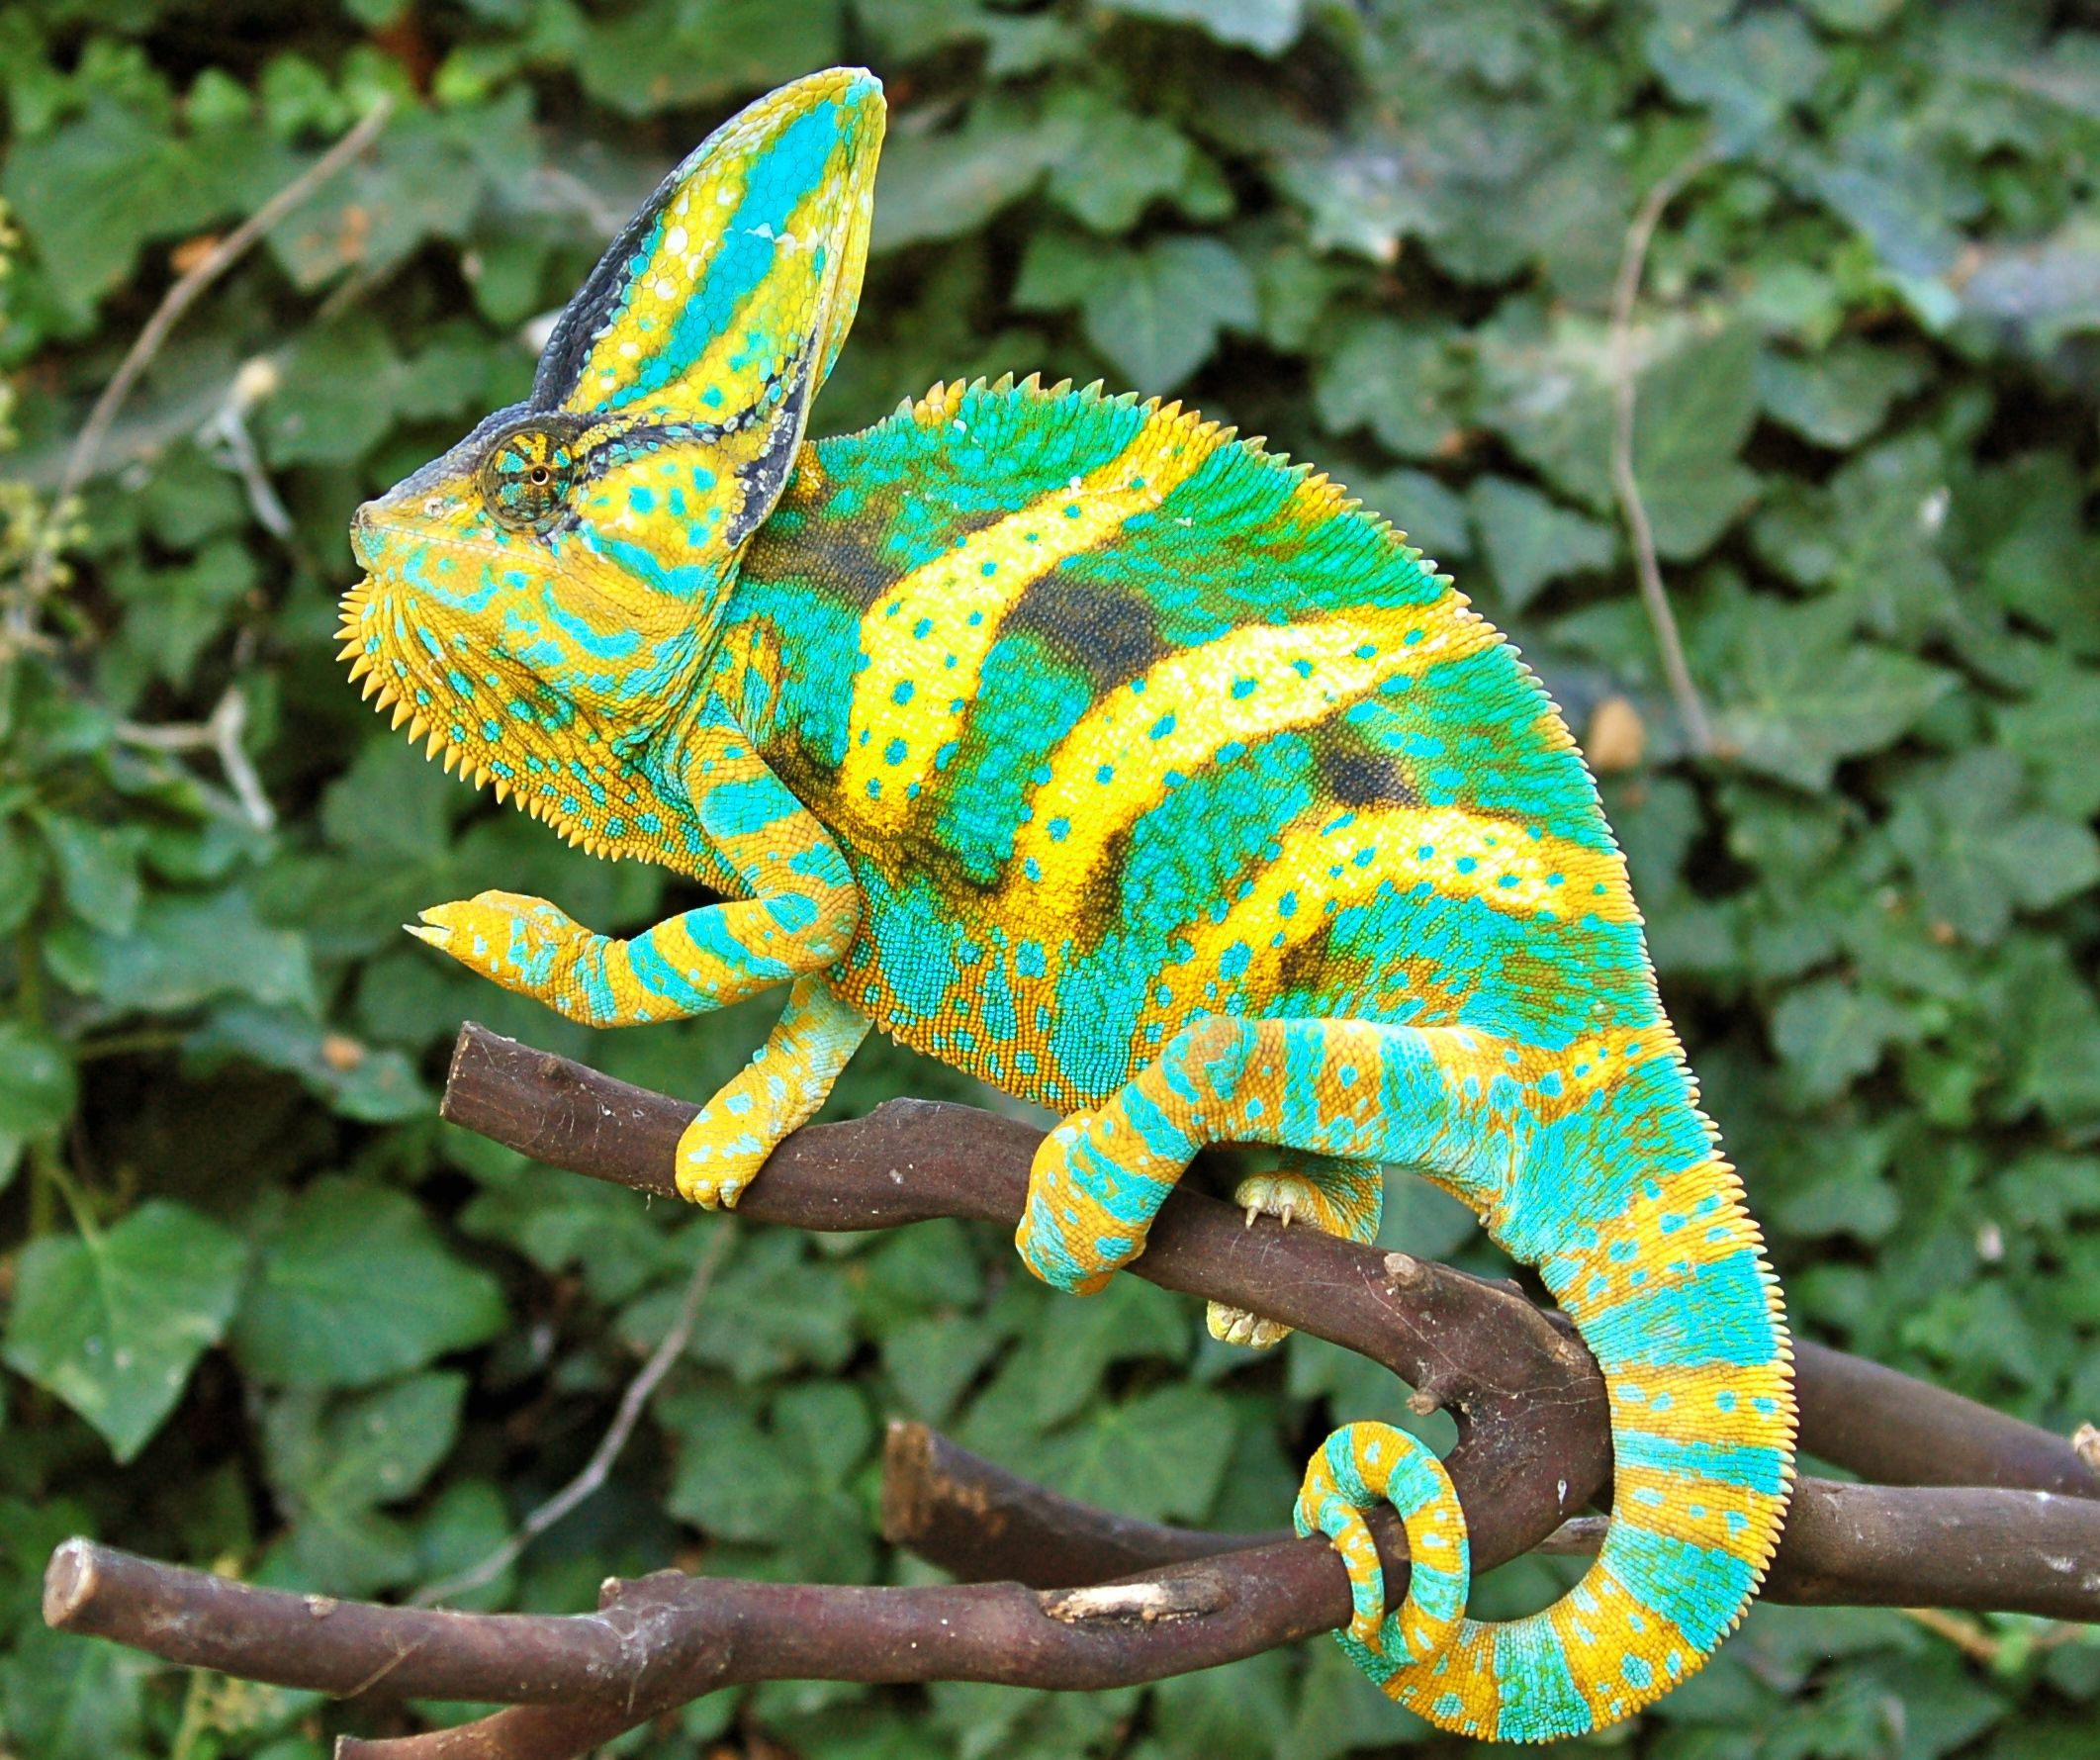 Chameleon Full HD Image | Dictionary of Dreams